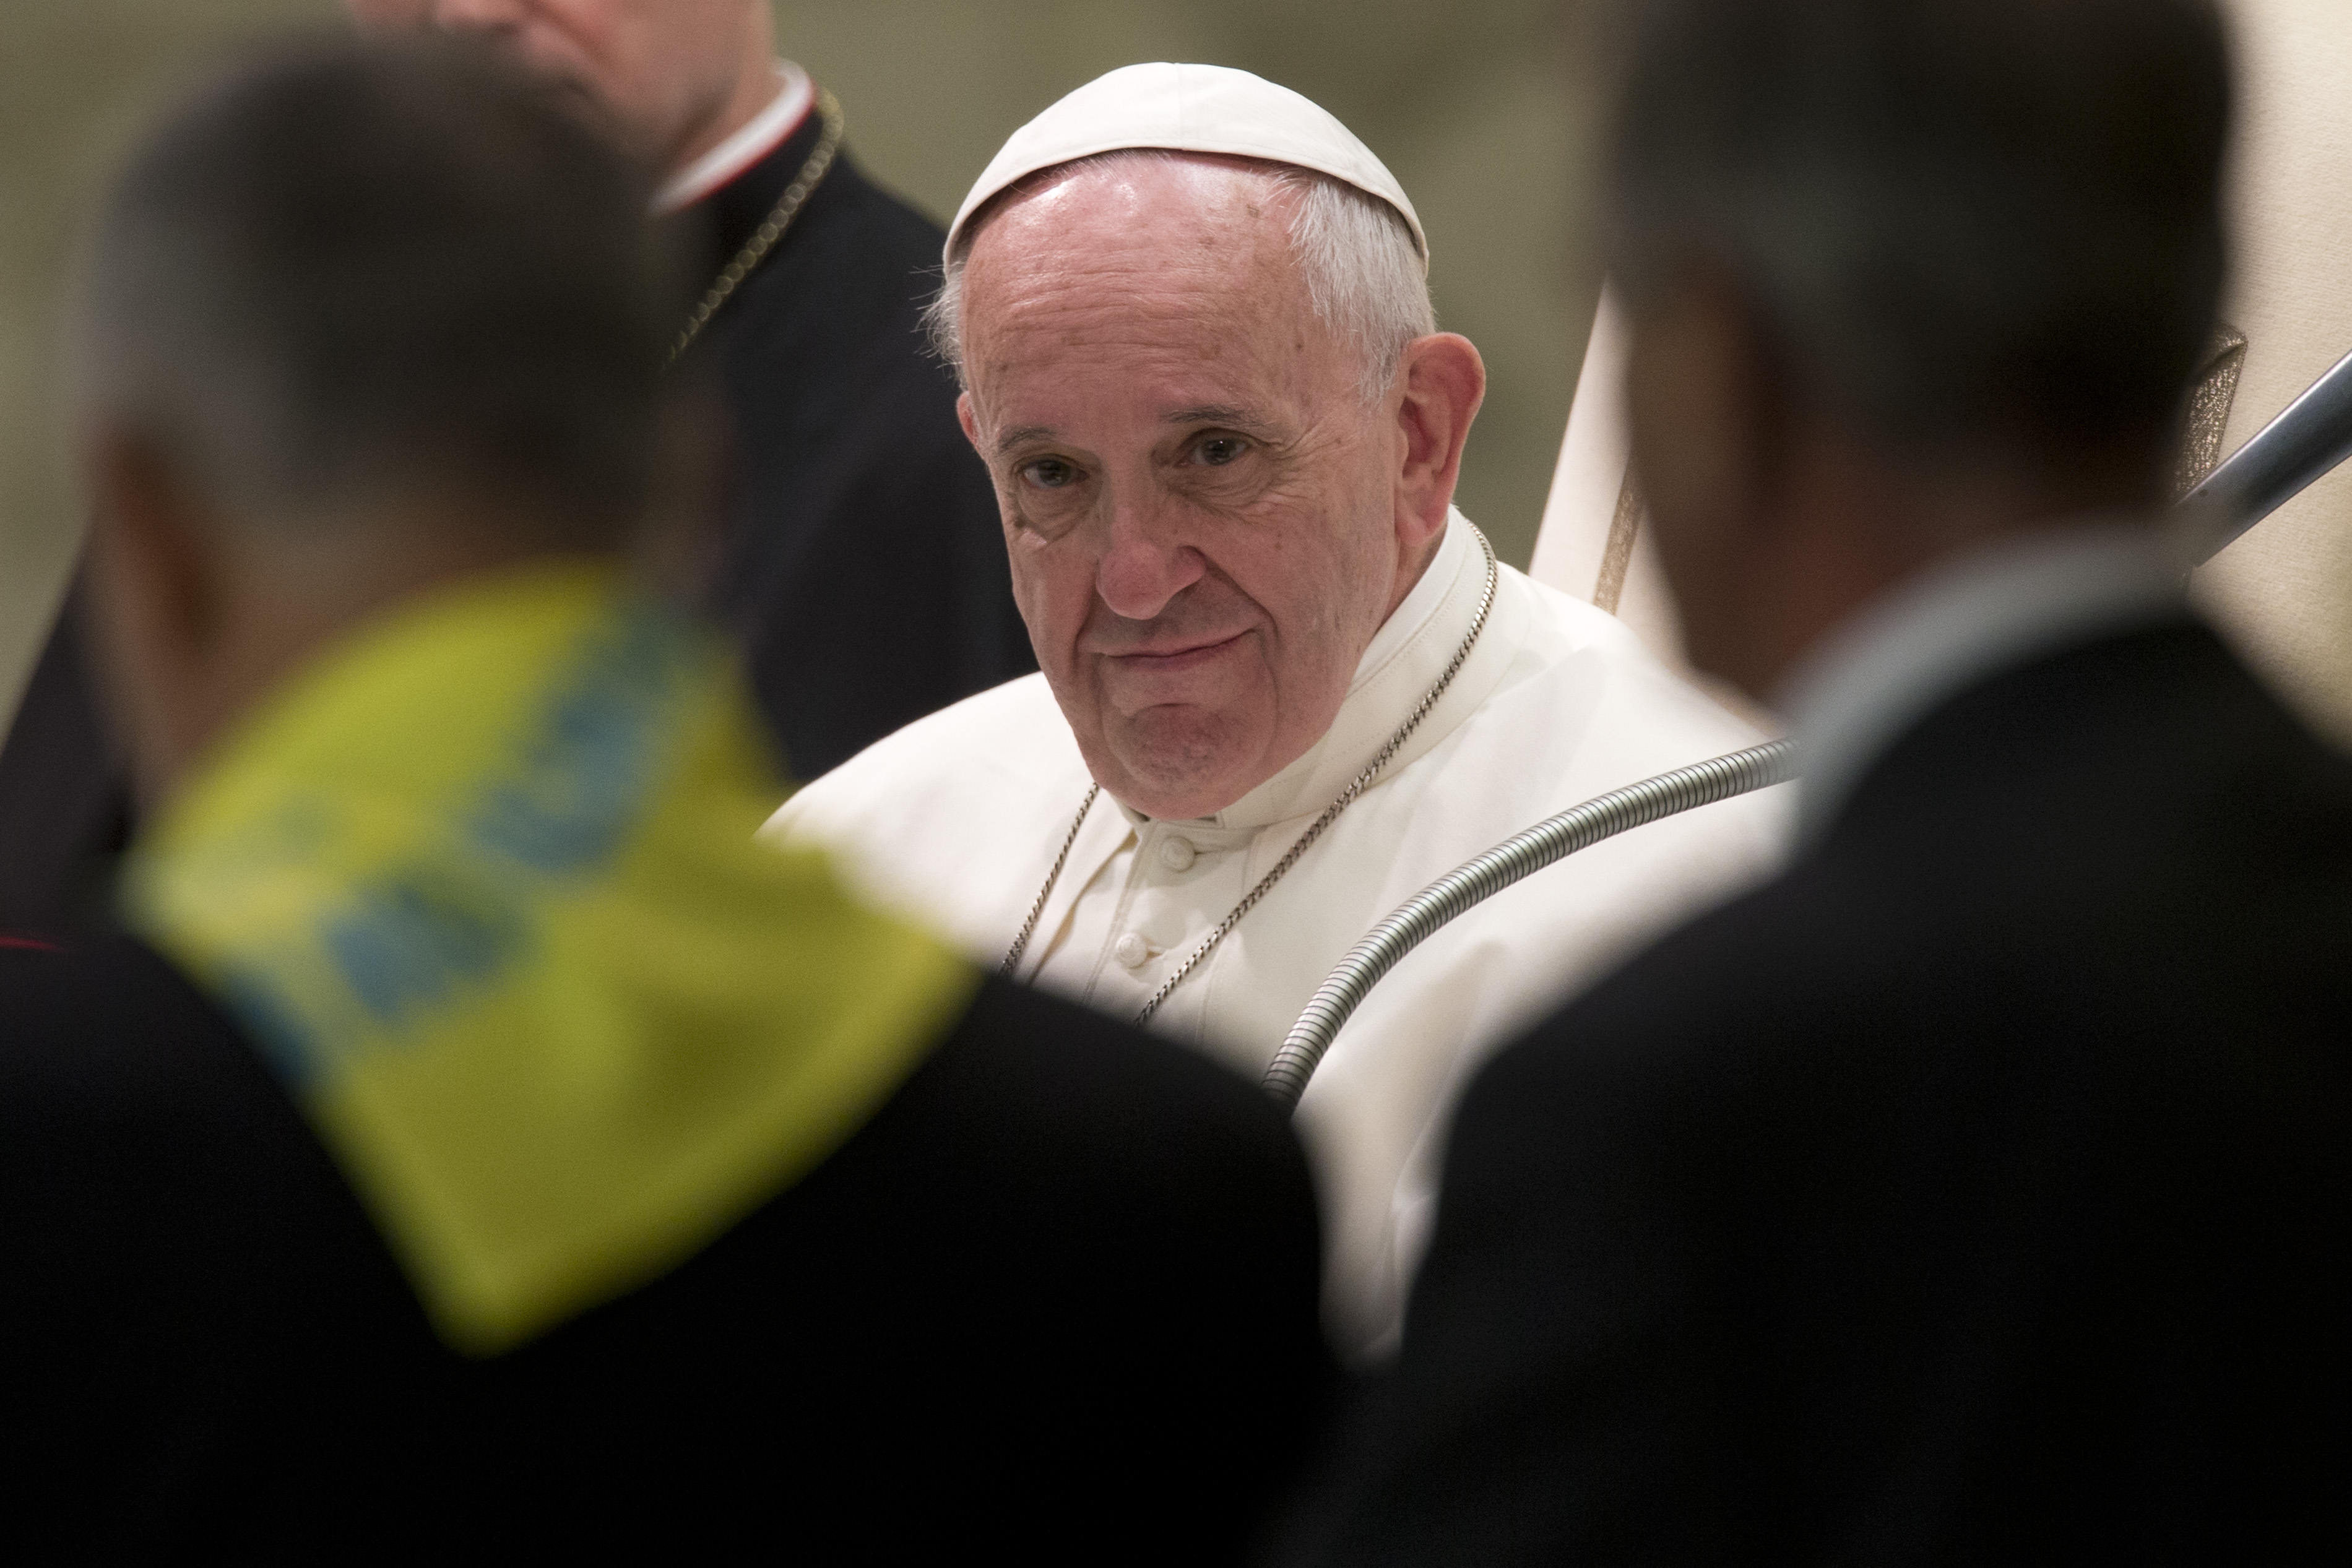 Pope Francis meets with members of the Don Guanella charity organization at the Vatican, Nov. 12, 2015. The flare-up of Vatican scandals doesn't seem to have disturbed the pontiff.